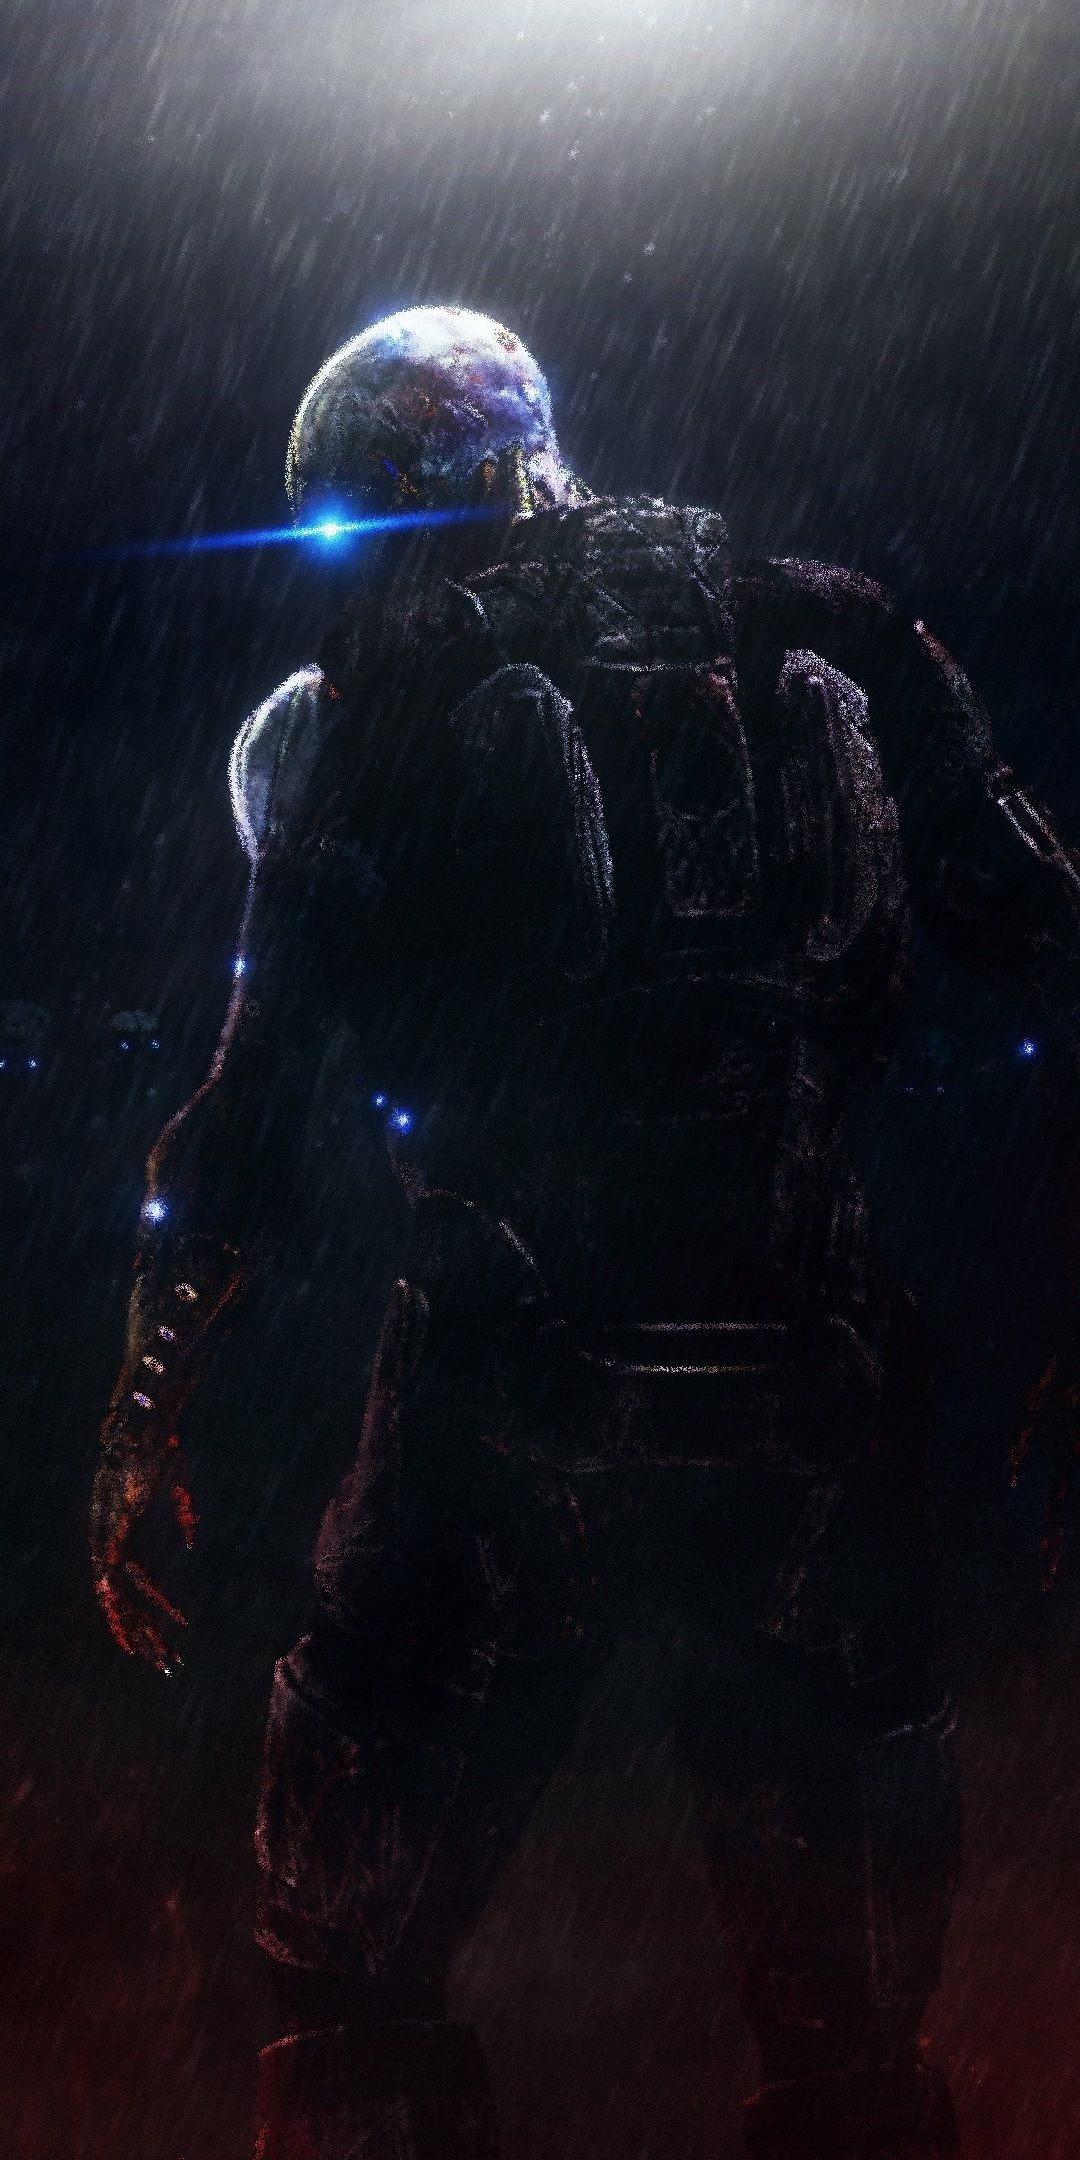 Dark Ascension Mass Effect Trilogy Video Game Soldiers Art